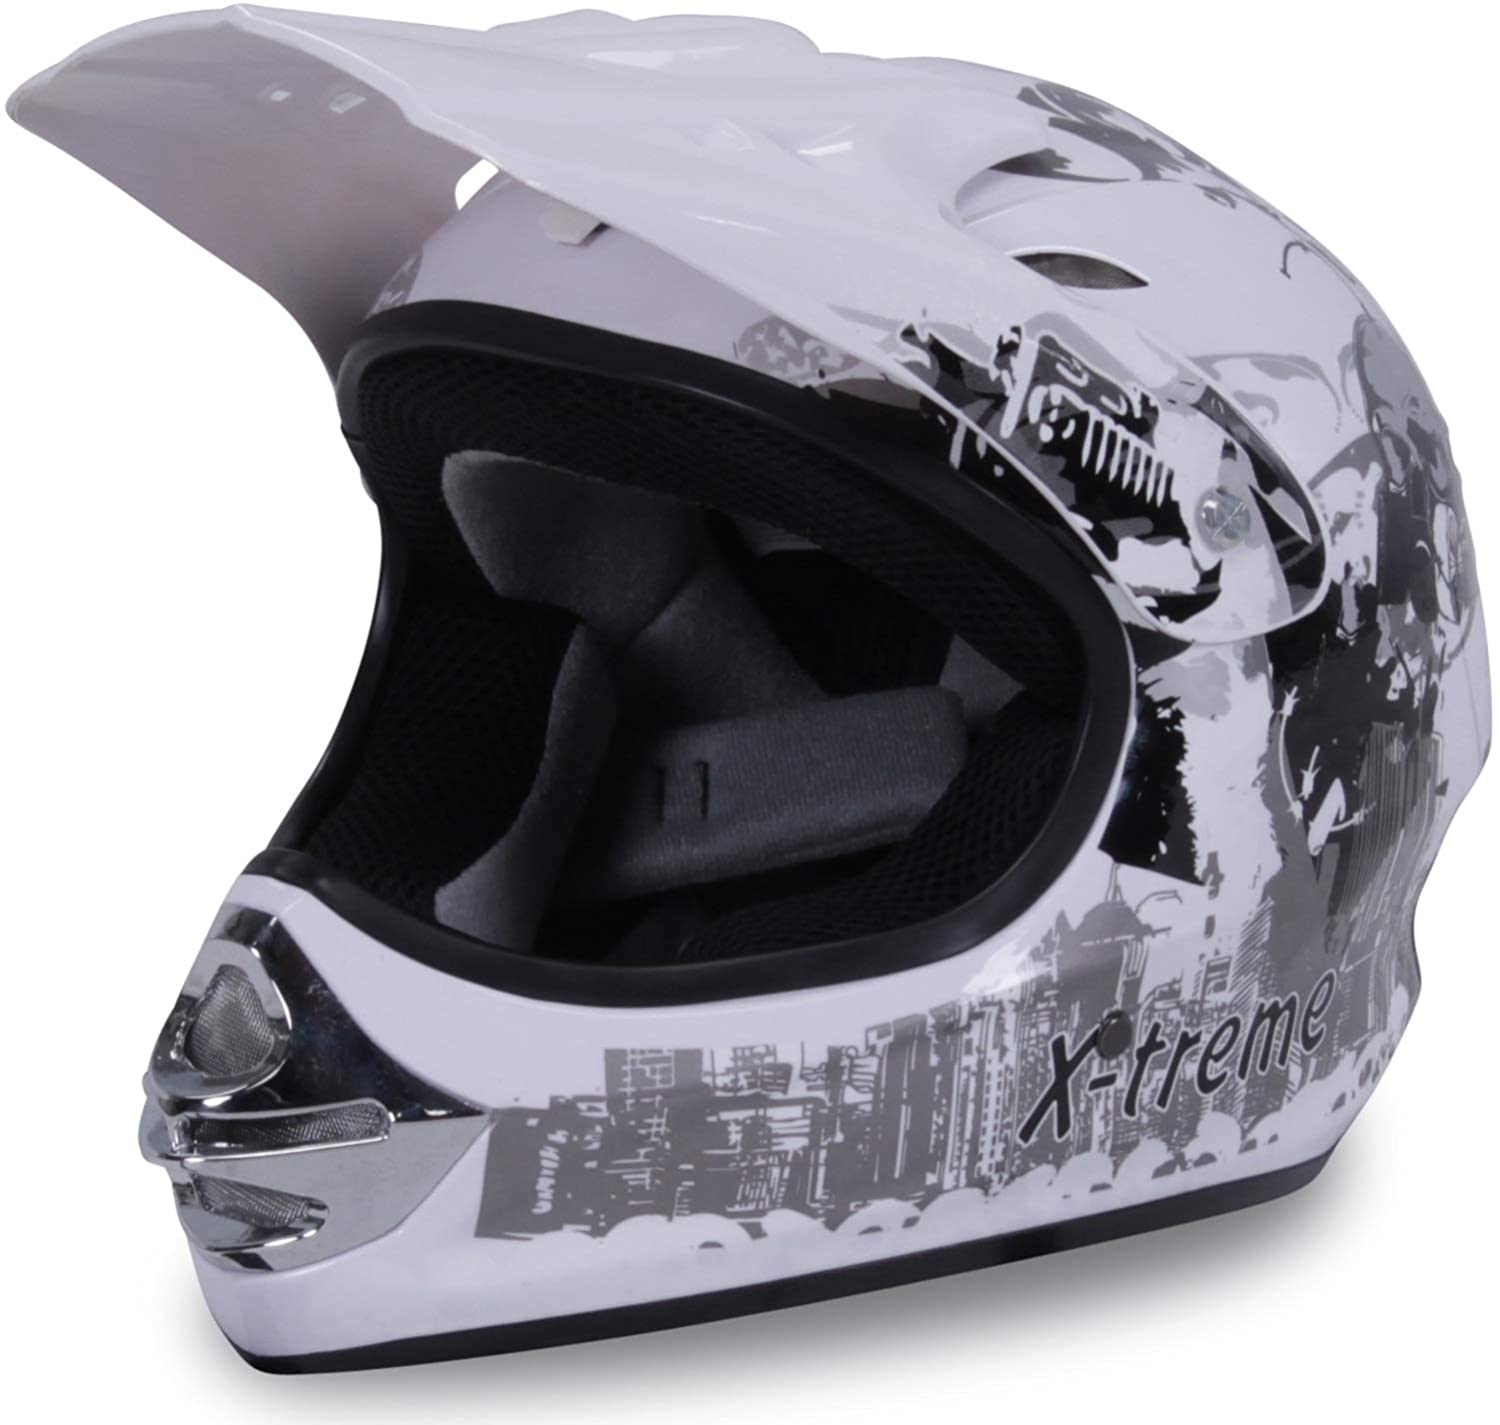 Large Actionbikes Motors Motorradhelm Kinder Cross Helme Sturzhelm Schutzhelm Helm f/ür Motorrad Kinderquad und Crossbike in schwarz